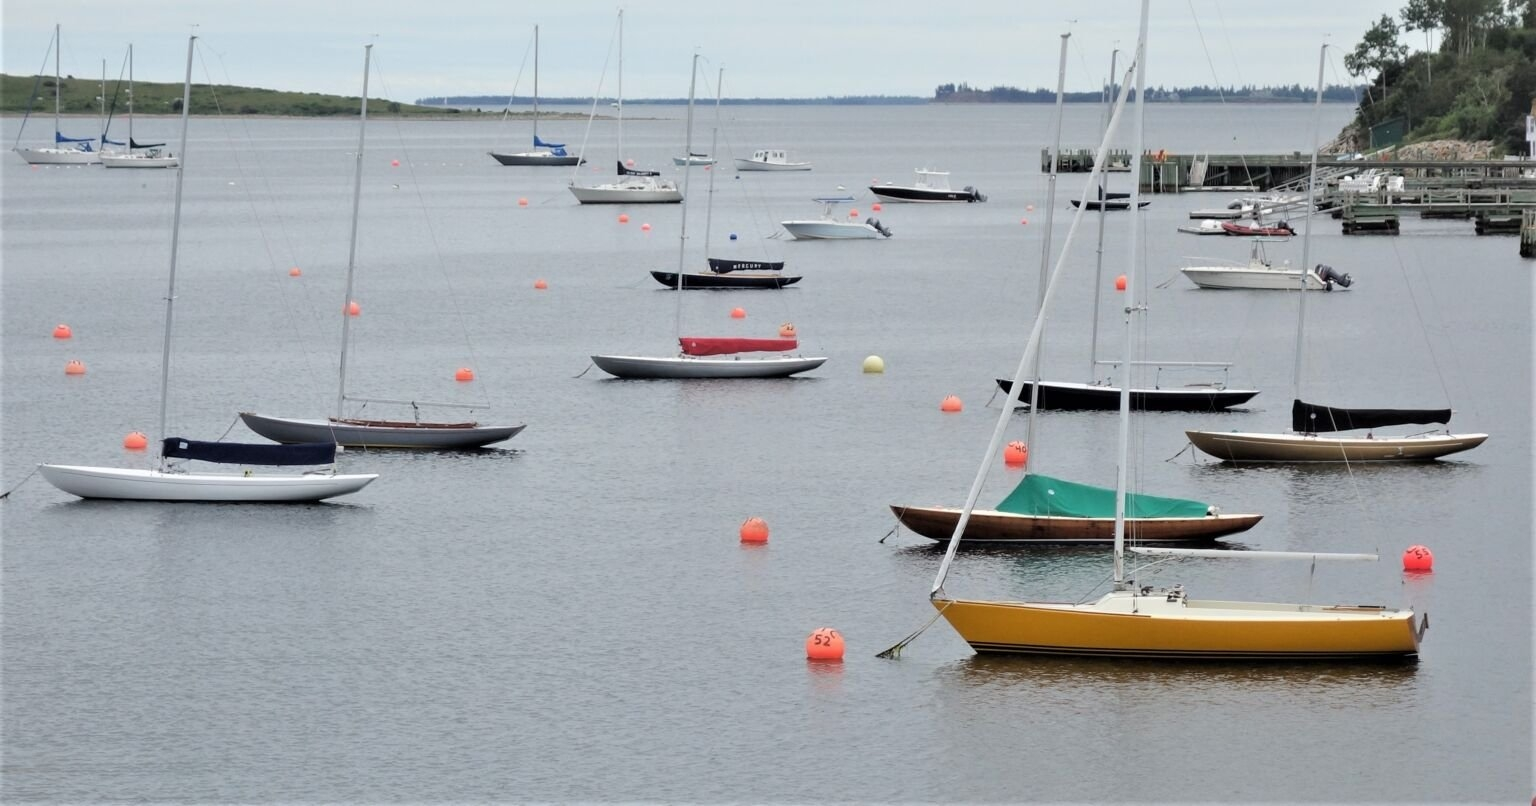 Small, colourful unrigged sailboats moored in a calm harbour